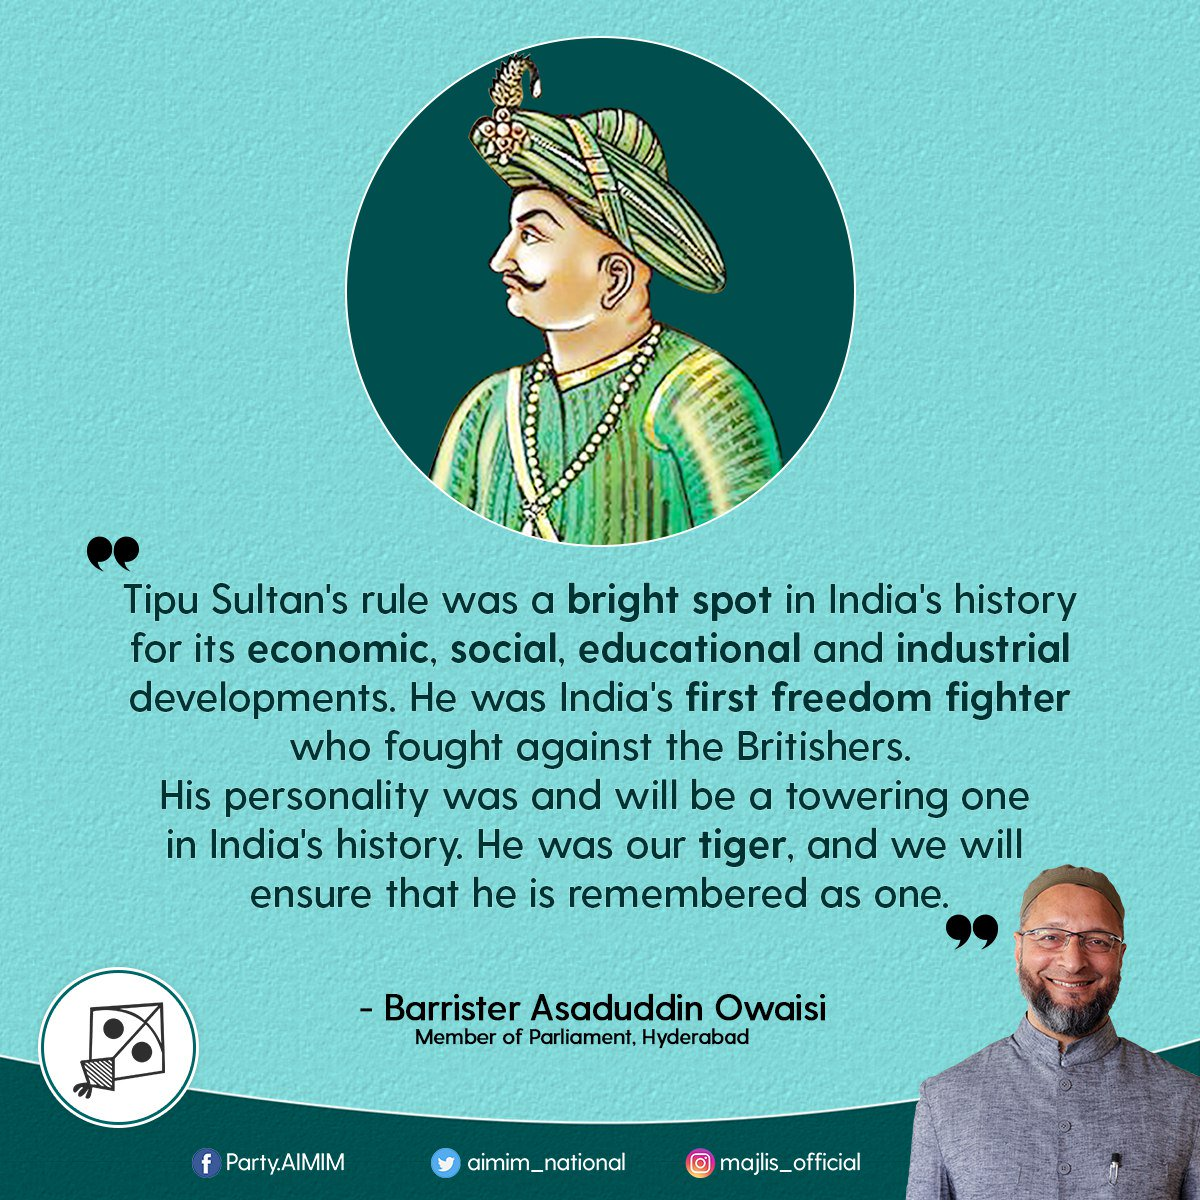 .@aimim_national honours Shaheed Tipu Sultan - Sher-e-Mysore, the first freedom fighter of India, on his birth anniversary. #TipuJayanti